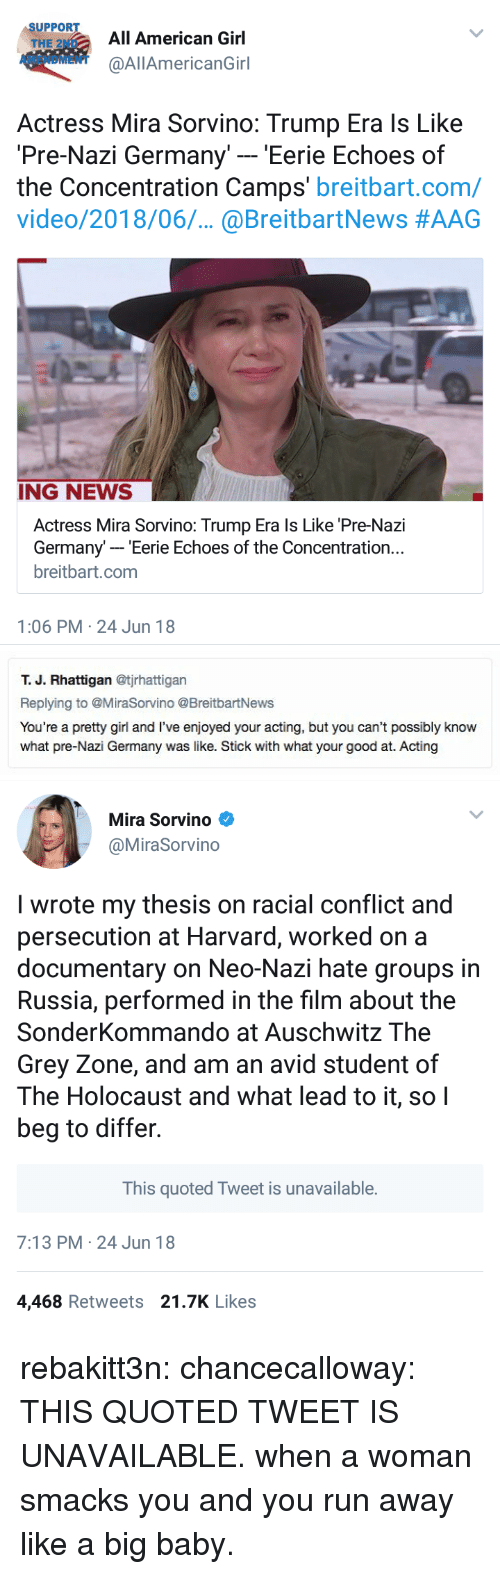 amendment: SUPPORT  THE 2ND  AMENDMENT  All American Girl  @AllAmericanGirl  Actress Mira Sorvino: Trump Era ls Like  Pre-Nazi Germany' - 'Eerie Echoes of  the Concentration Camps' breitbart.com/  video/2018/06.. @BreitbartNews #AAG  ING NEWS  Actress Mira Sorvino: Trump Era ls Like 'Pre-Nazi  Germany- Eerie Echoes of the Concentration..  breitbart.com  1:06 PM 24 Jun 18   т. Ј. Rhattigan @tjrhattigan  Replying to @MiraSorvino @BreitbartNews  You're a pretty girl and I've enjoyed your acting, but you can't possibly know  what pre-Nazi Germany was like. Stick with what your good at. Acting   Mira Sorvino  @MiraSorvino  I wrote my thesis on racial conflict and  persecution at Harvard, worked on a  documentary on Neo-Nazi hate groups in  Russia, performed in the film about the  SonderKommando at Auschwitz The  Grey Zone, and am an avid student of  The Holocaust and what lead to it, soI  beg to differ.  This quoted Tweet is unavailable.  7:13 PM 24 Jun 18  4,468 Retweets 21.7K Likes rebakitt3n:  chancecalloway: THIS QUOTED TWEET IS UNAVAILABLE. when a woman smacks you and you run away like a big baby.